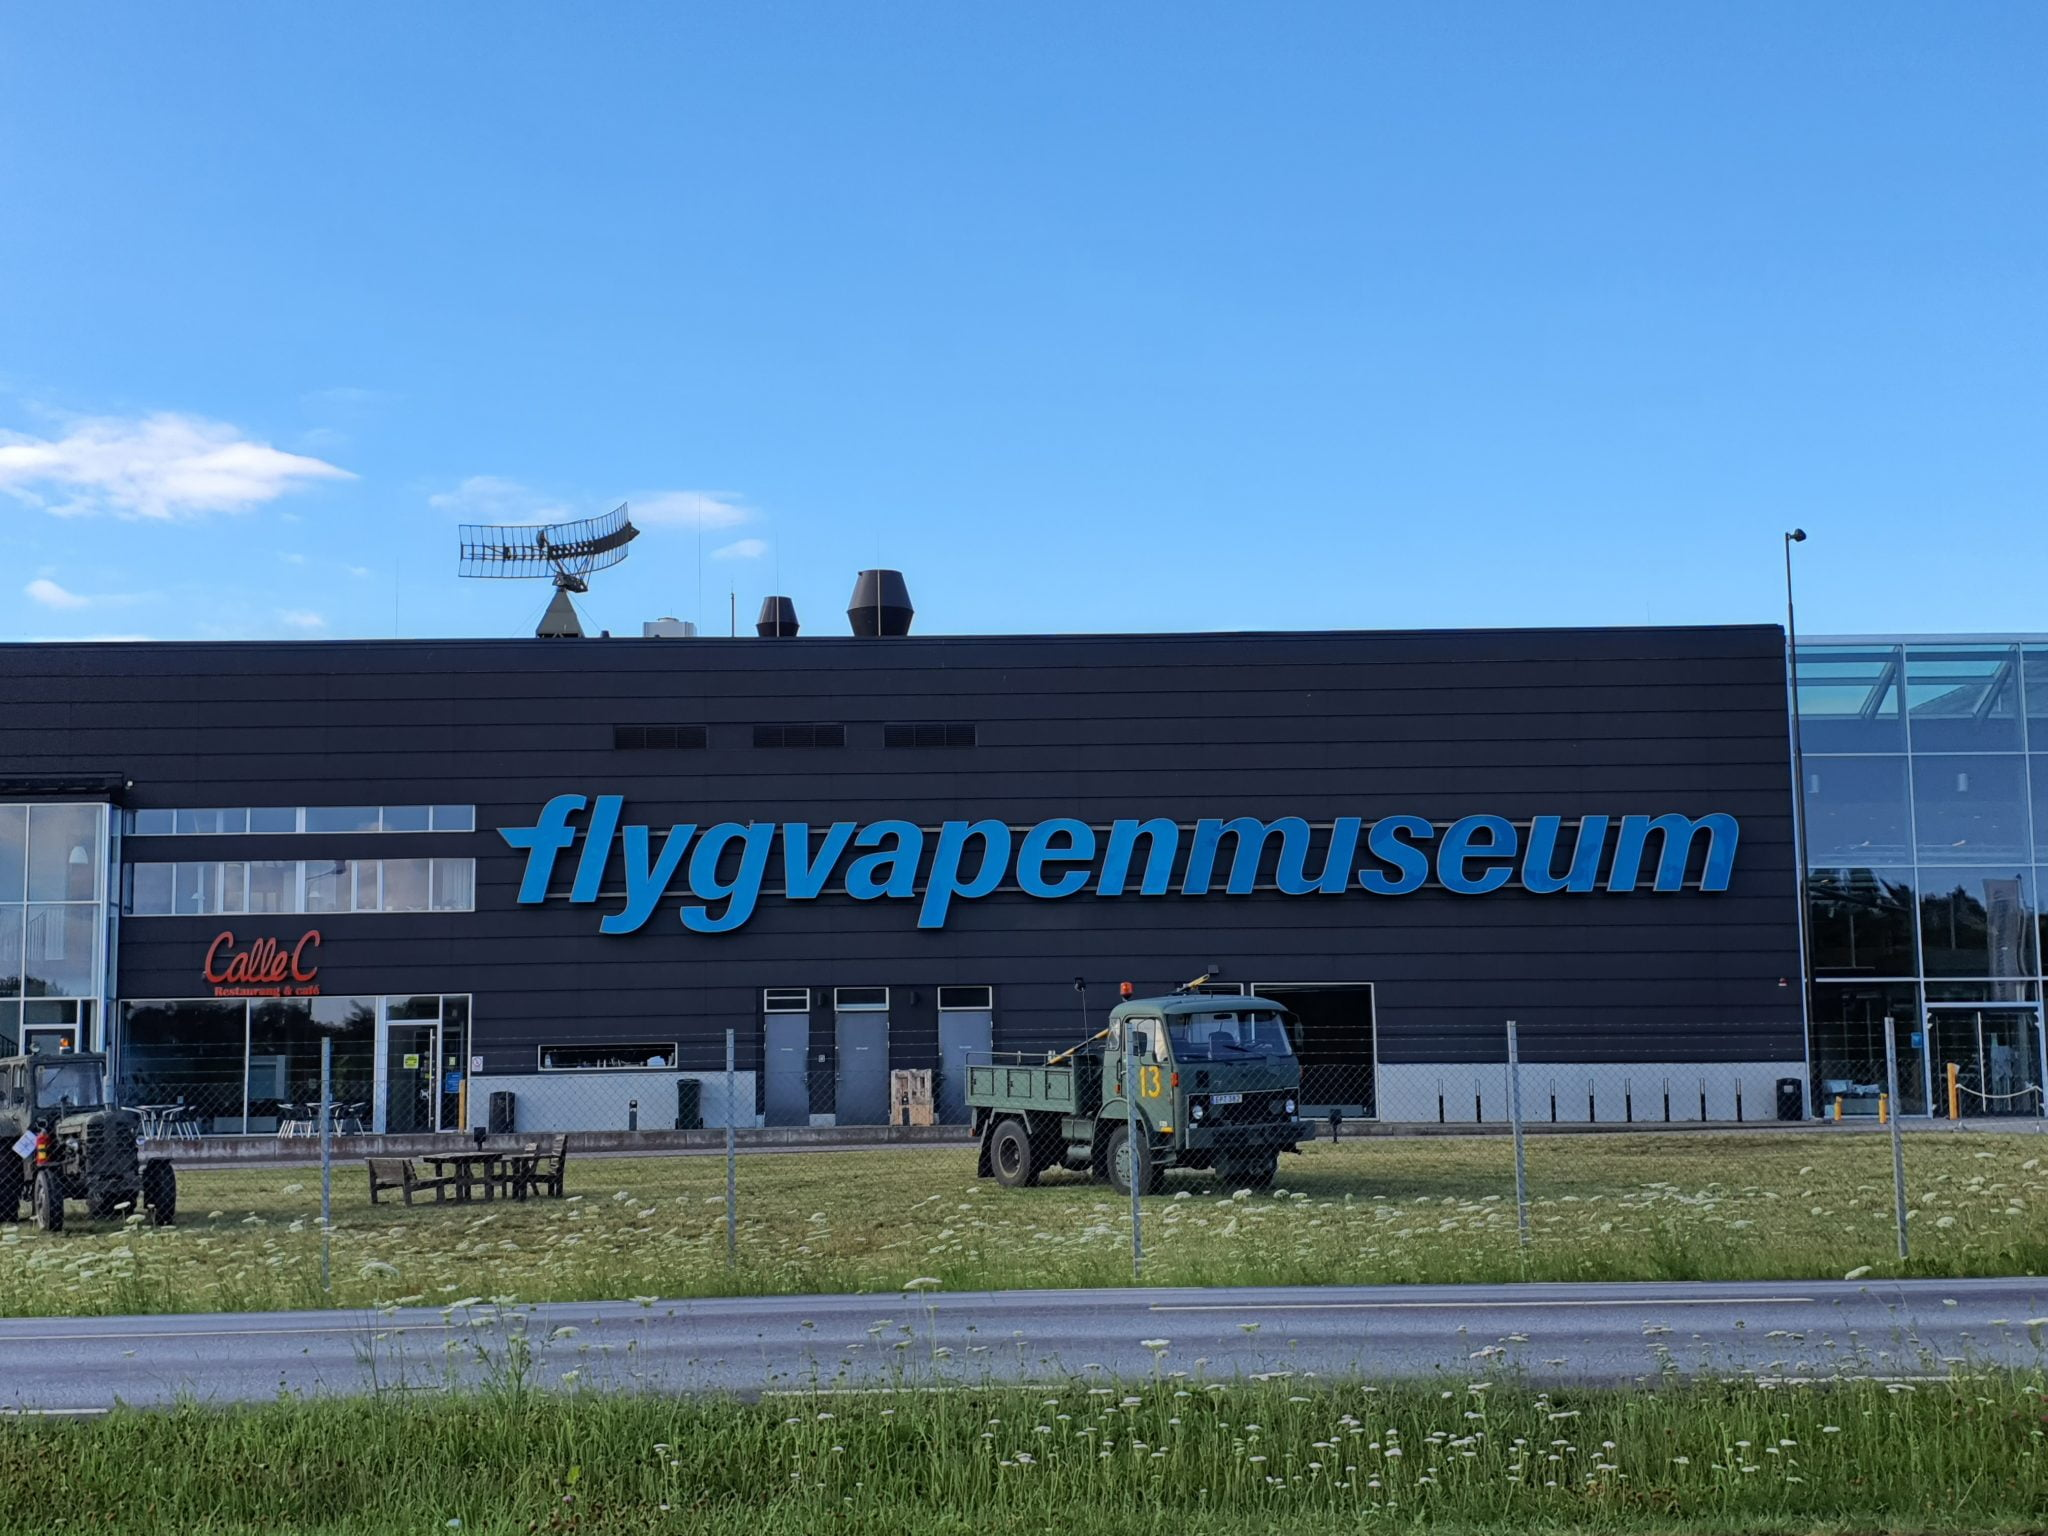 Air Force Museum in Linköping